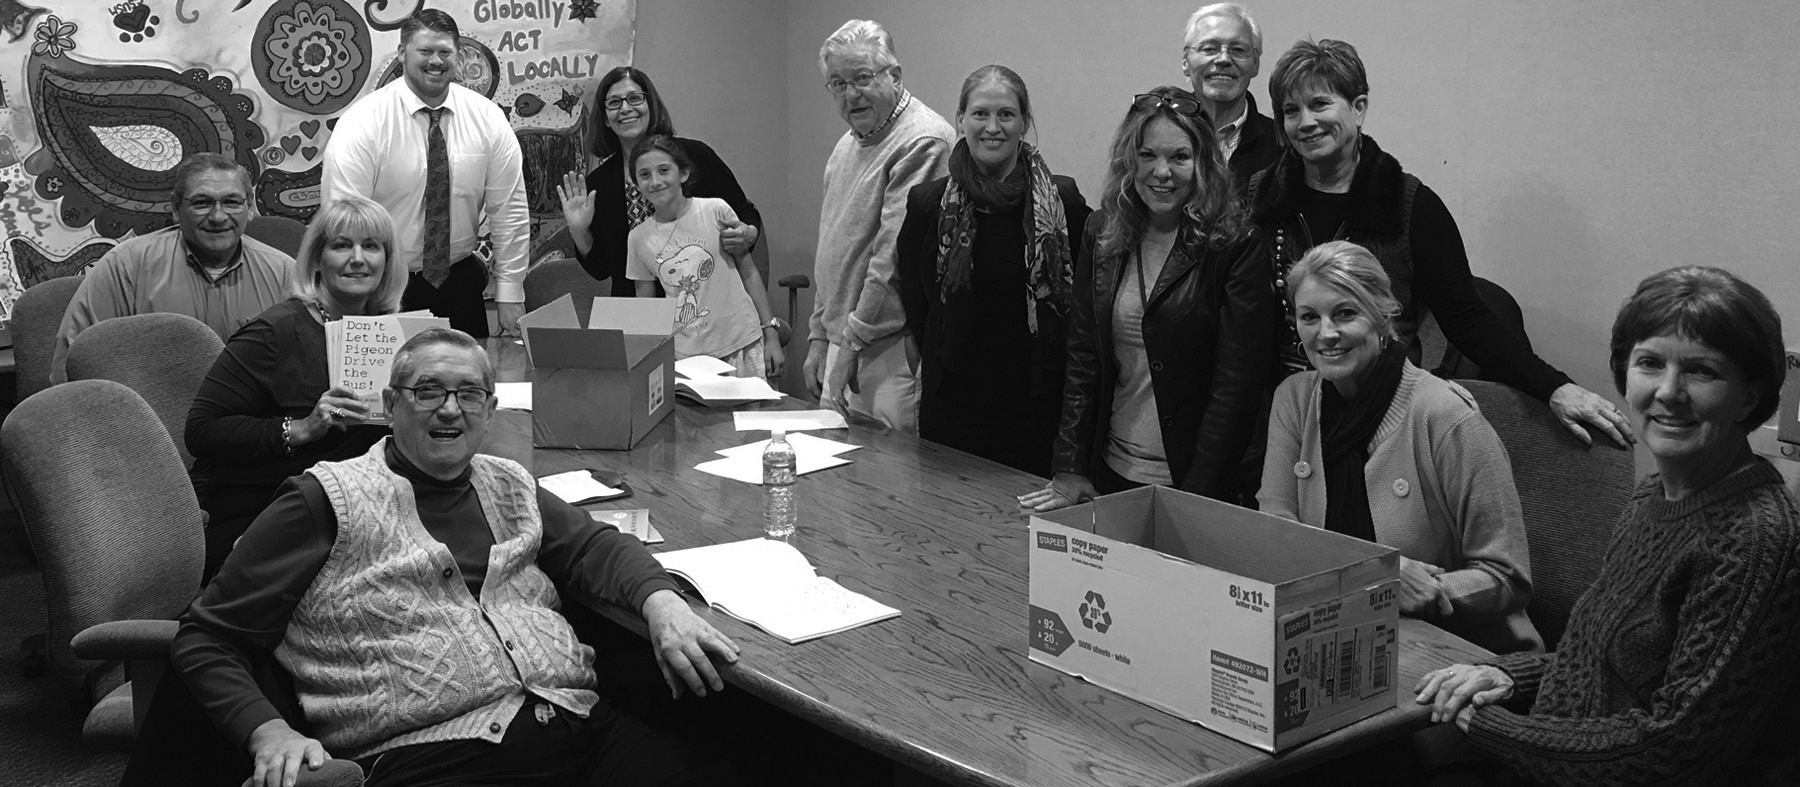 Pictured are Rotary Club members preparing the books for distribution to seven elementary schools in San Marcos Unified School District as part of the Clubs' Literacy Project. L to R around the table are Bob Derry, Lynn Hunter, Ed Musgrove, Jesse Dix, Matilda and Sylvia Rough, John Wilson, Stephanie Jungersen, Kelly Crews, Darrell McMullen, Holly Malan, JulieRae MacLeod and Peggy Martin.